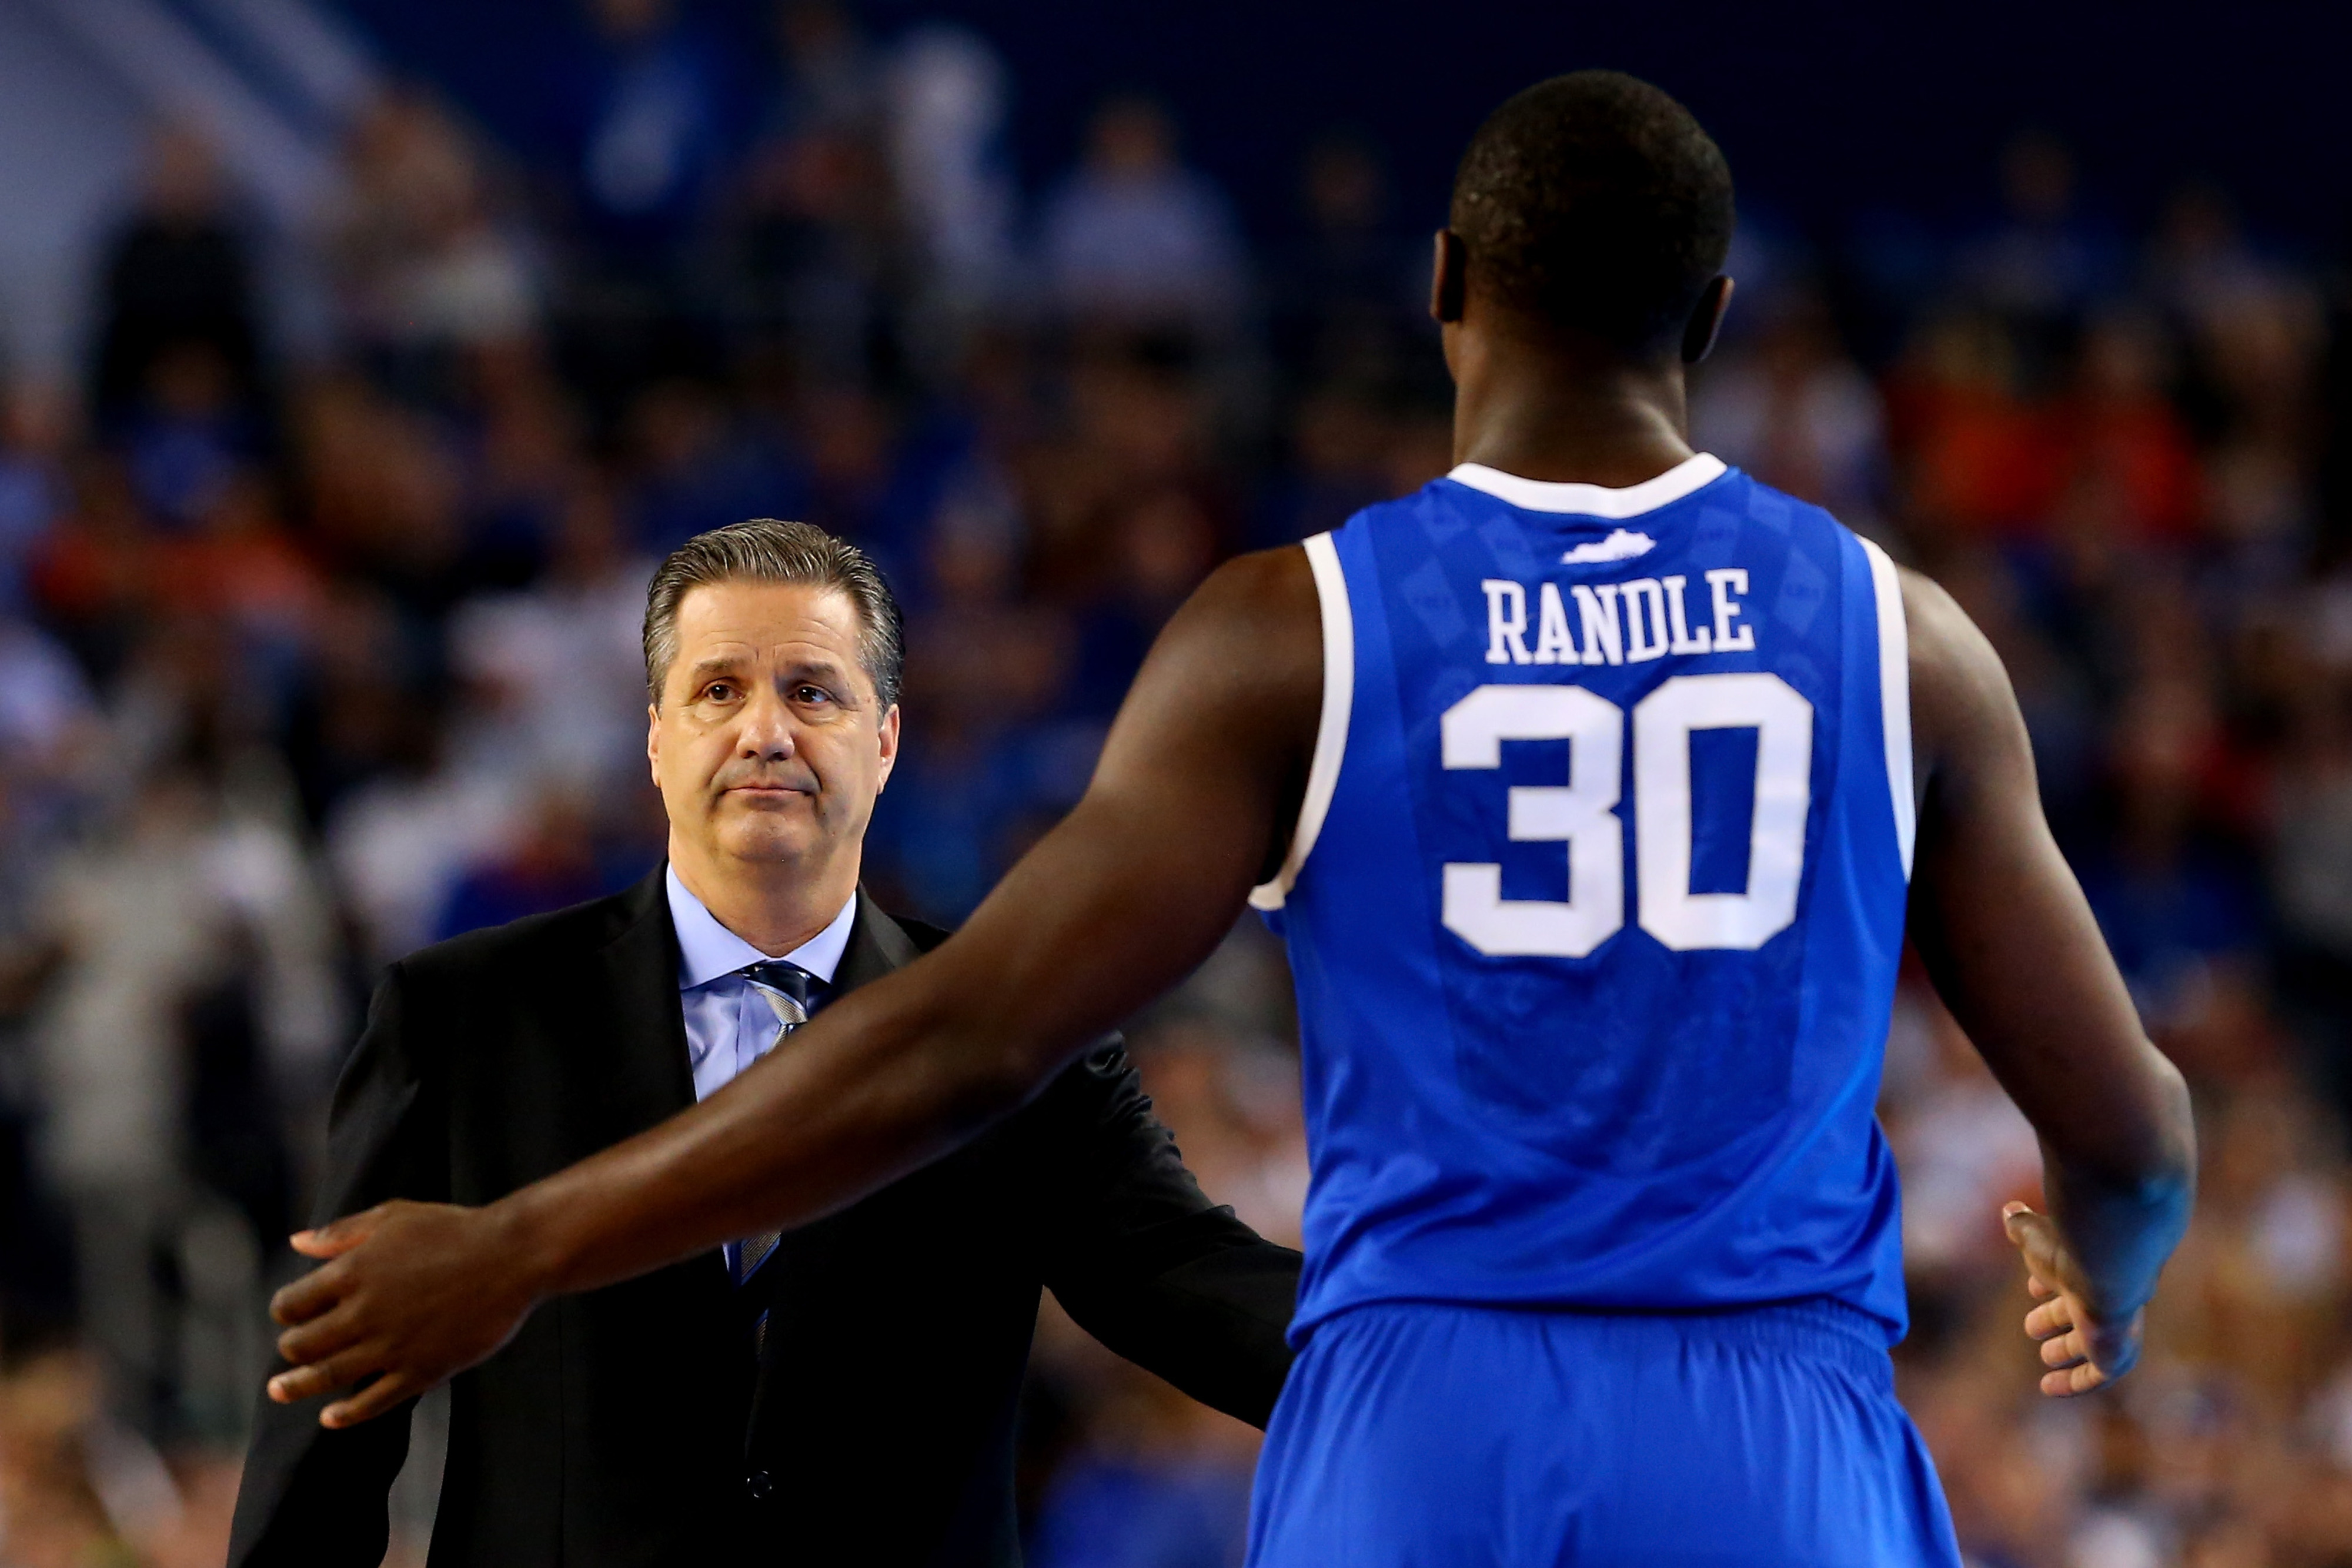 NBA Draft 2014: Julius Randle declares, but how good of a pro prospect is he?